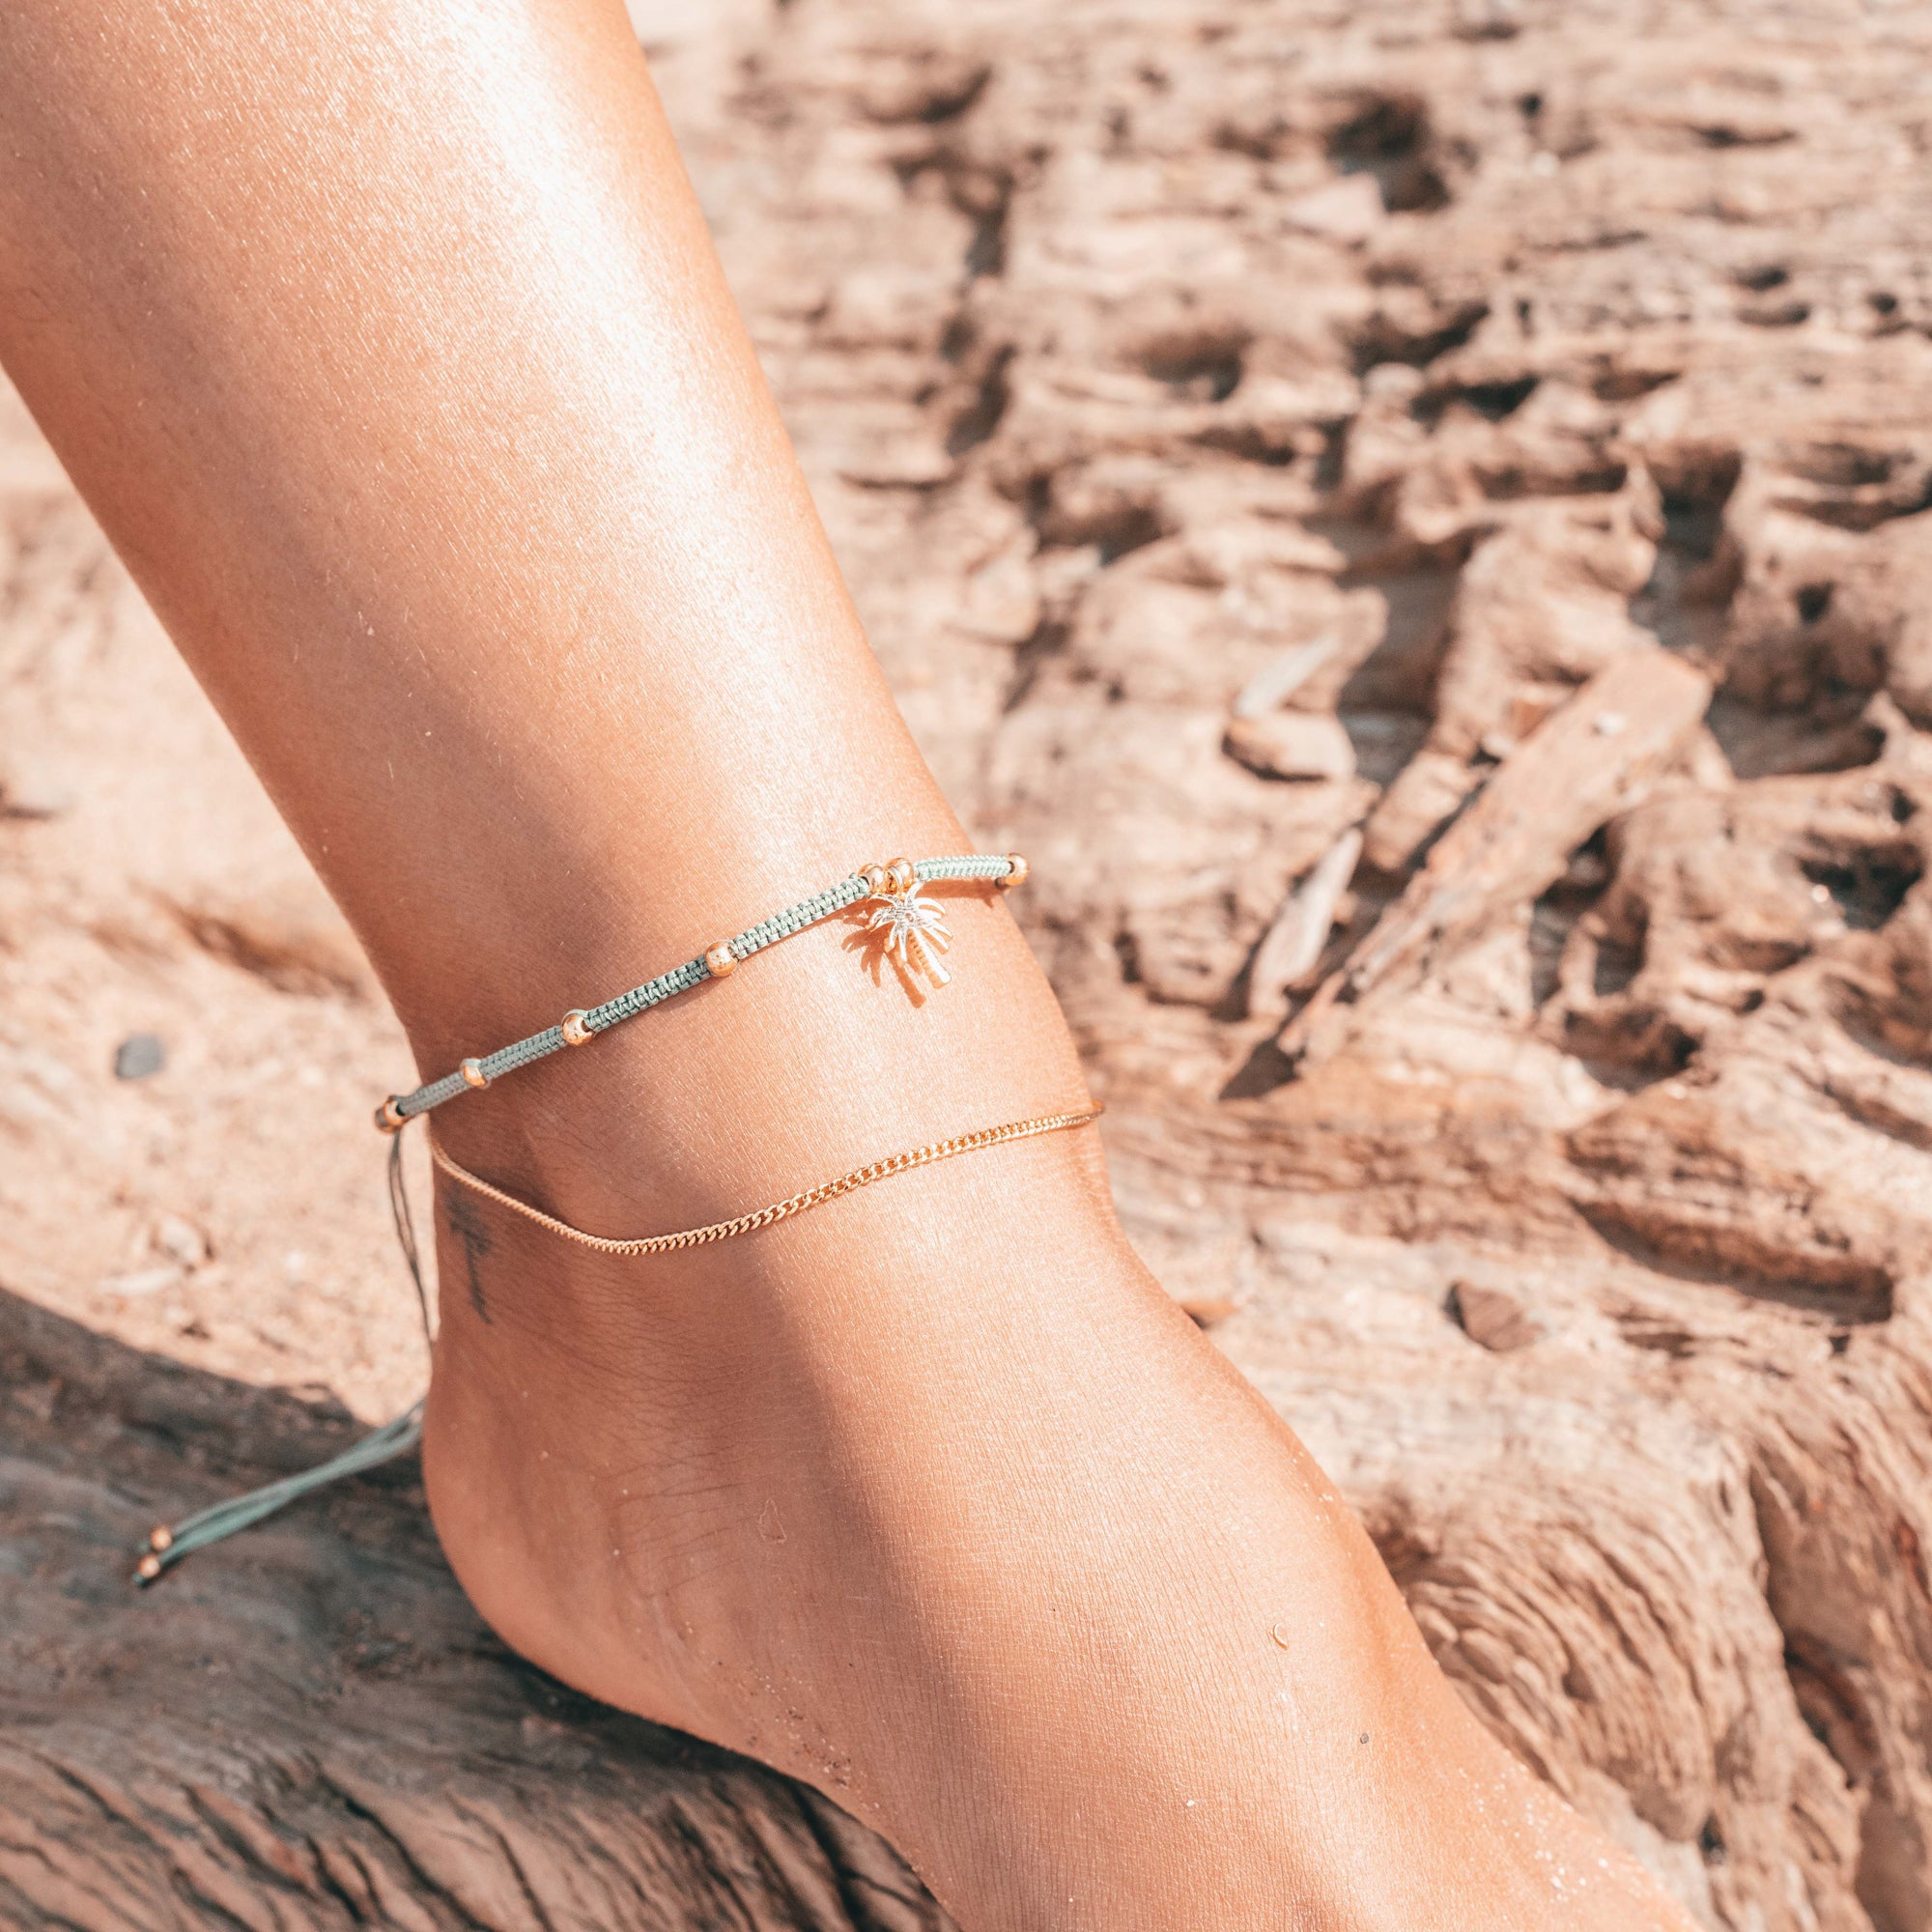 Dreamland Anklet - Palm Tree - Pineapple Island